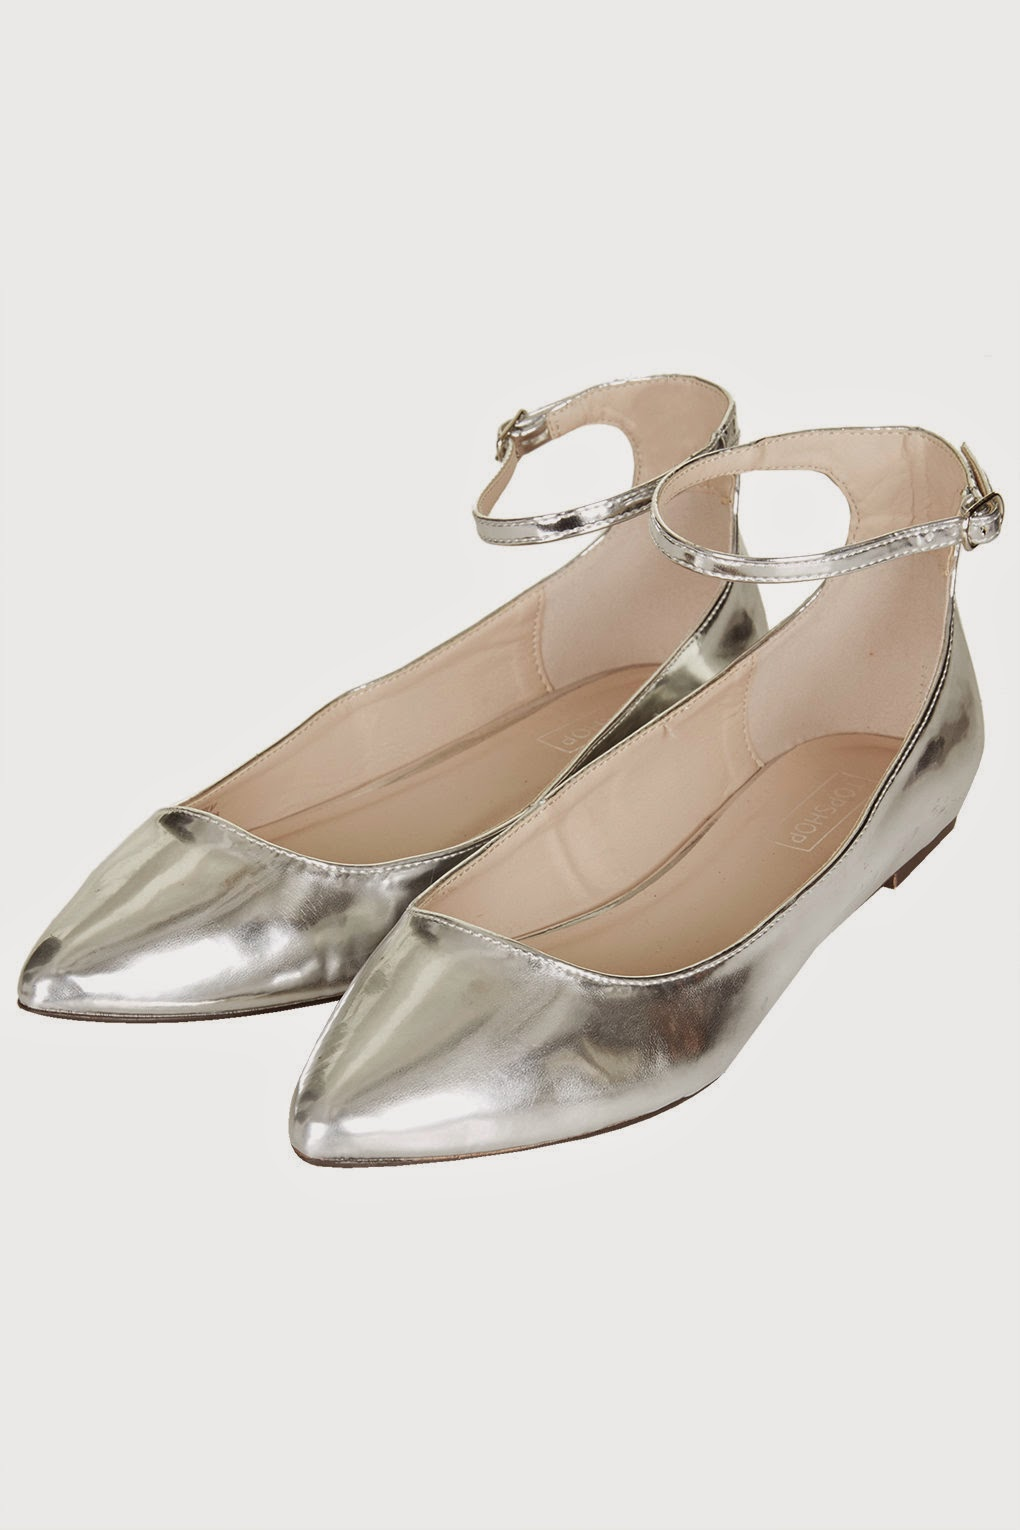 topshop silver shoes, silver flat shoes, silver pointed flats, pointed toe silver shoes,